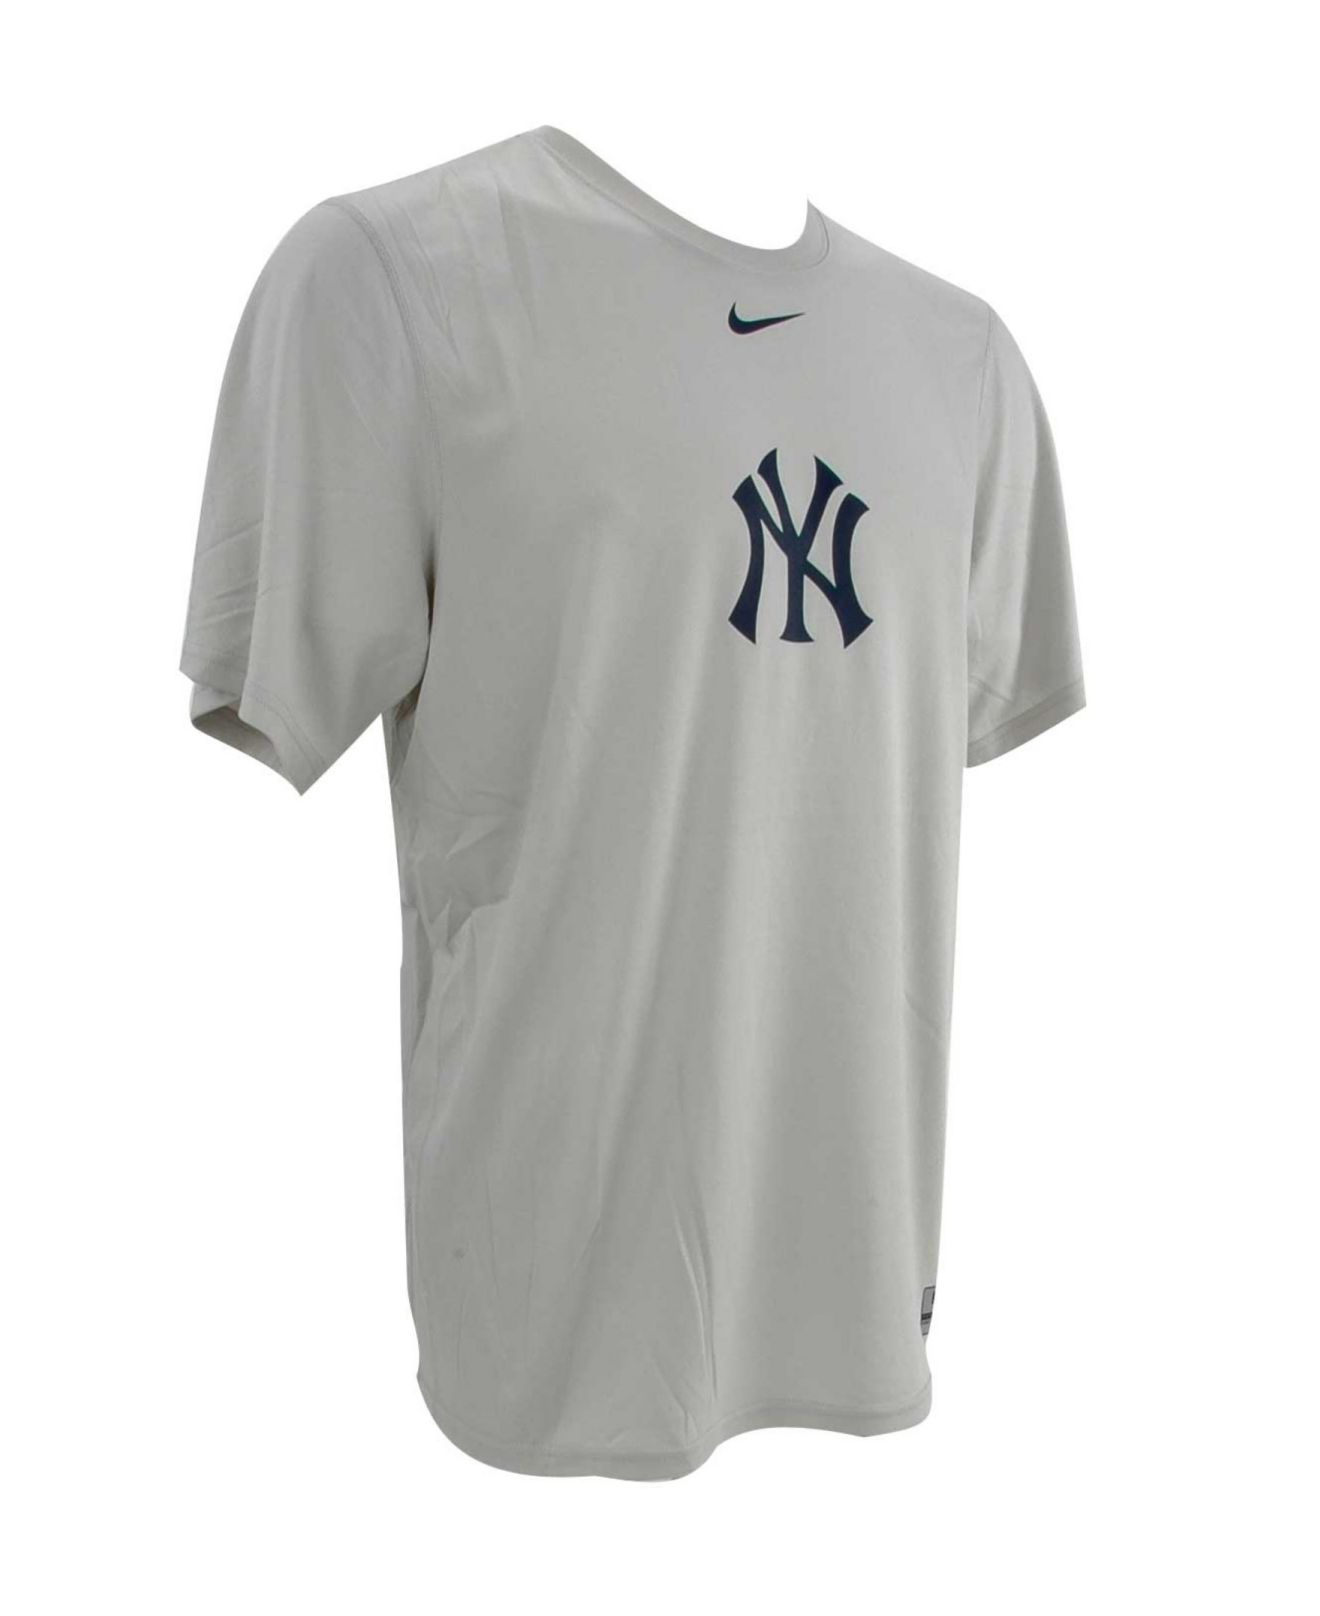 f51eaf0459c495 Lyst - Nike Men s New York Yankees Dri-fit Logo Legend T-shirt in ...